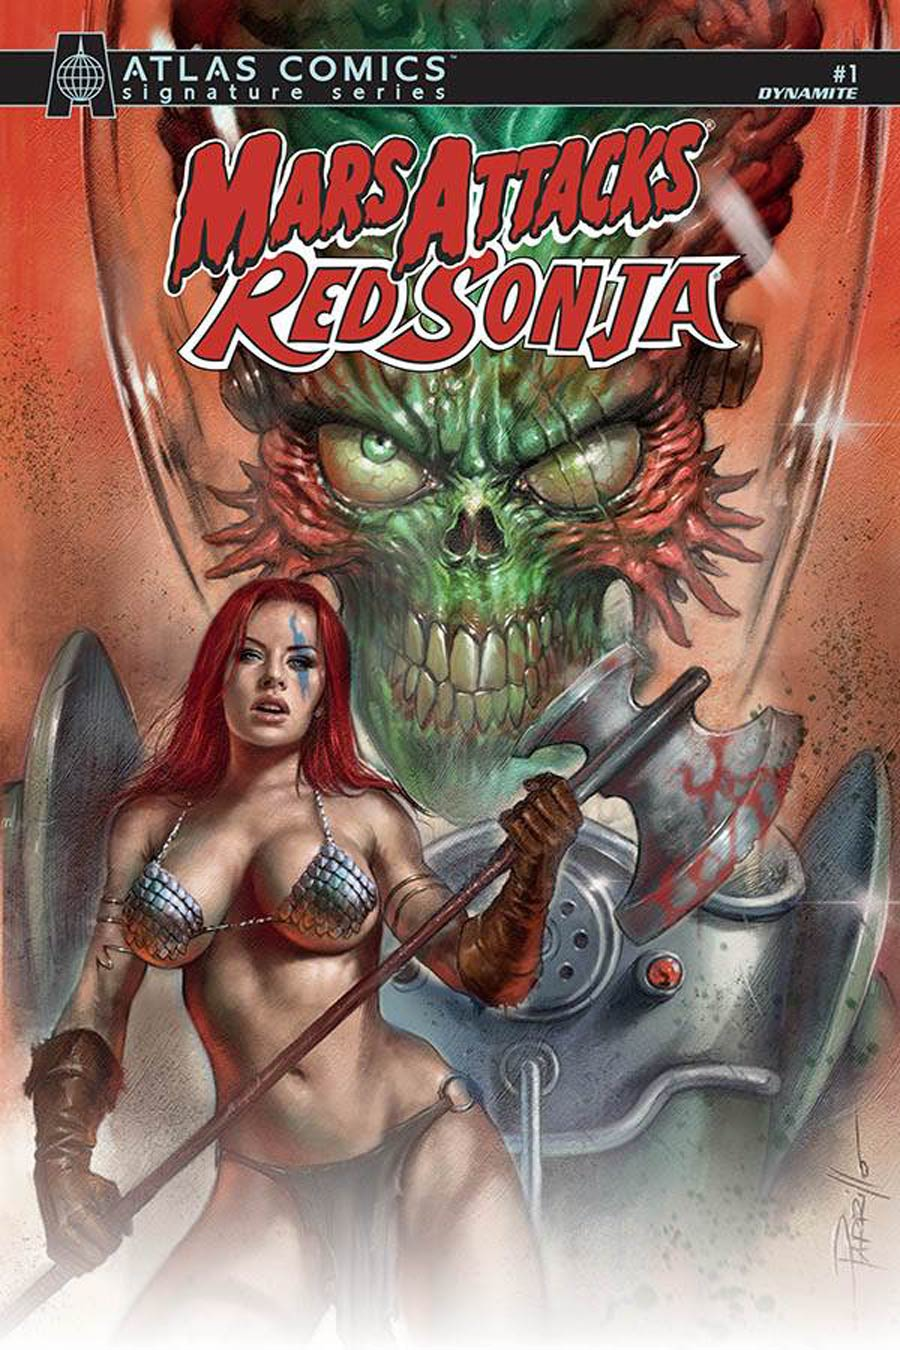 Mars Attacks Red Sonja #1 (2020)